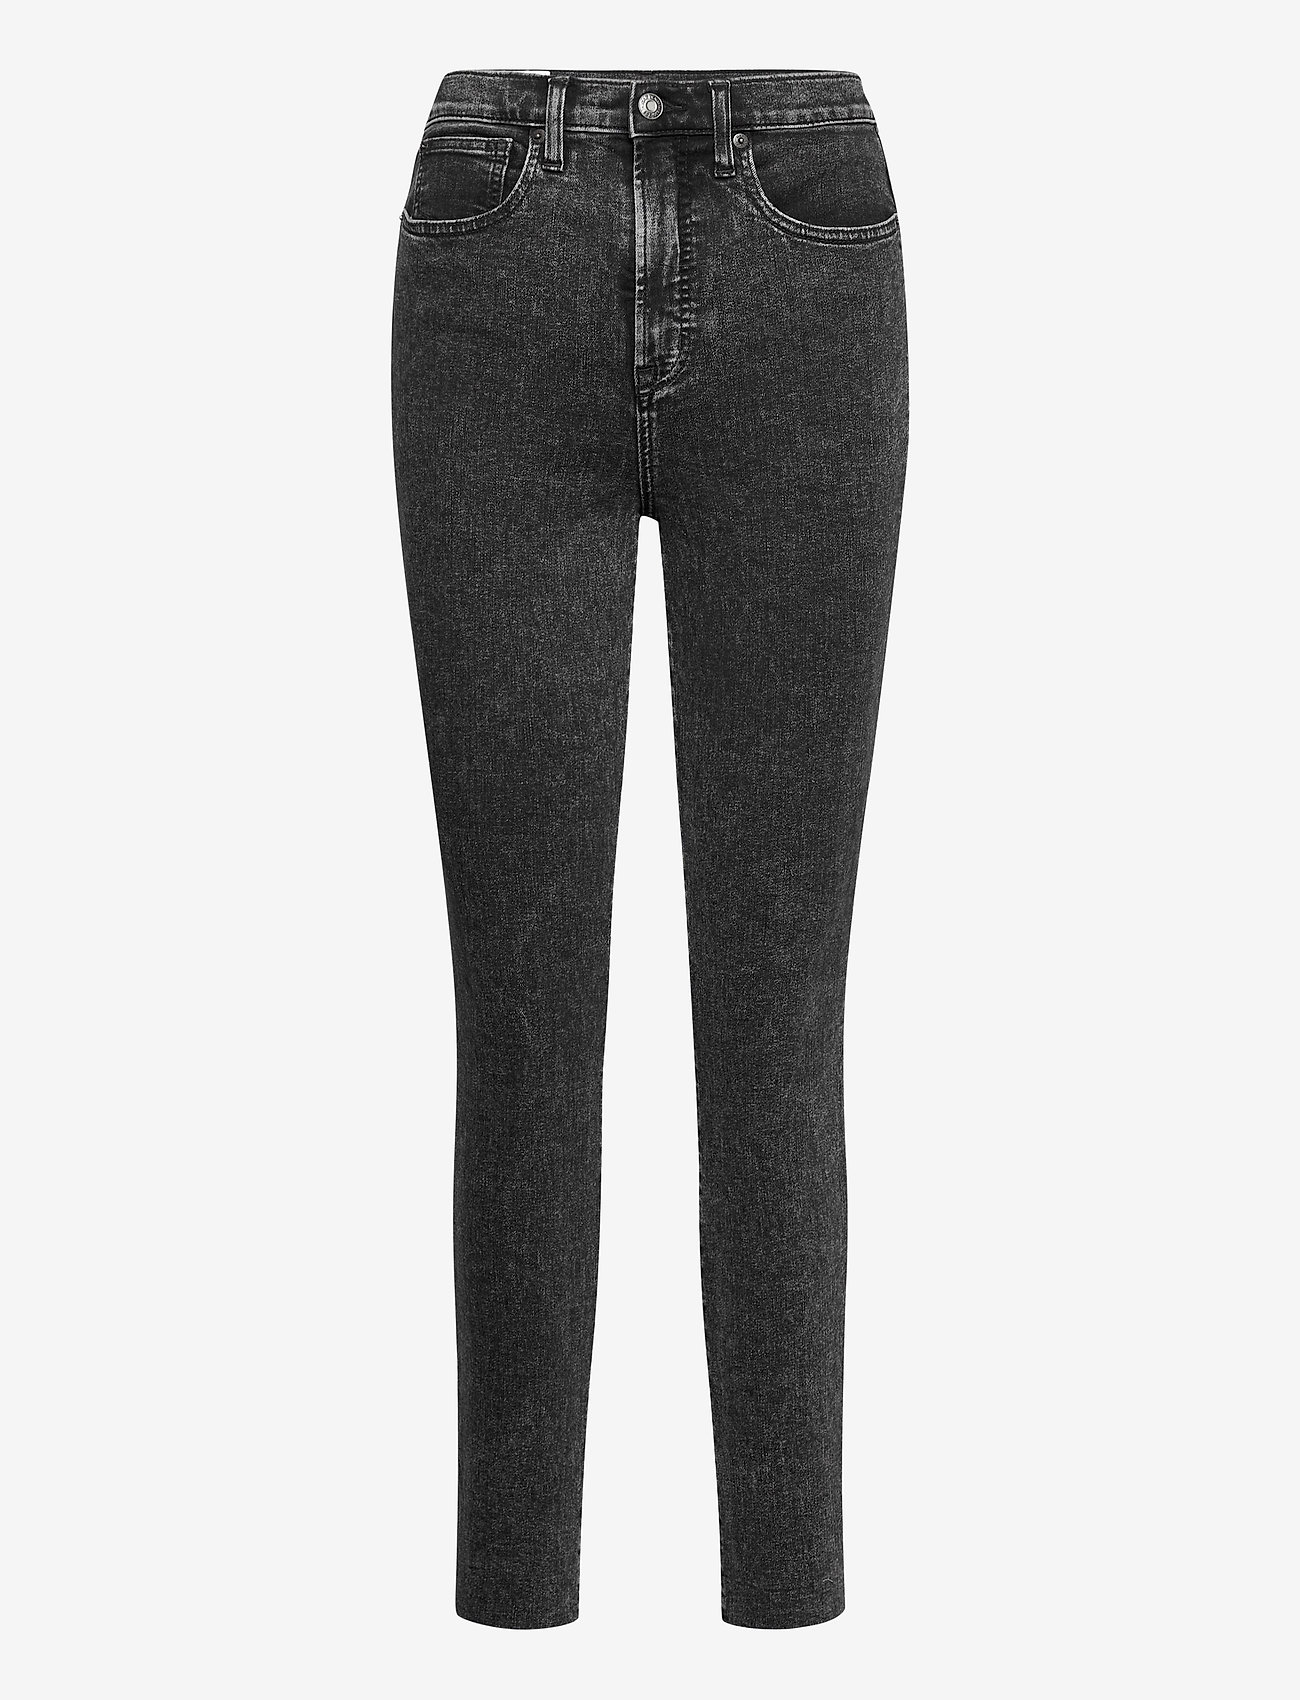 GAP - Sky High Rise True Skinny Jeans with Secret Smoothing - skinny jeans - acid wash - 0